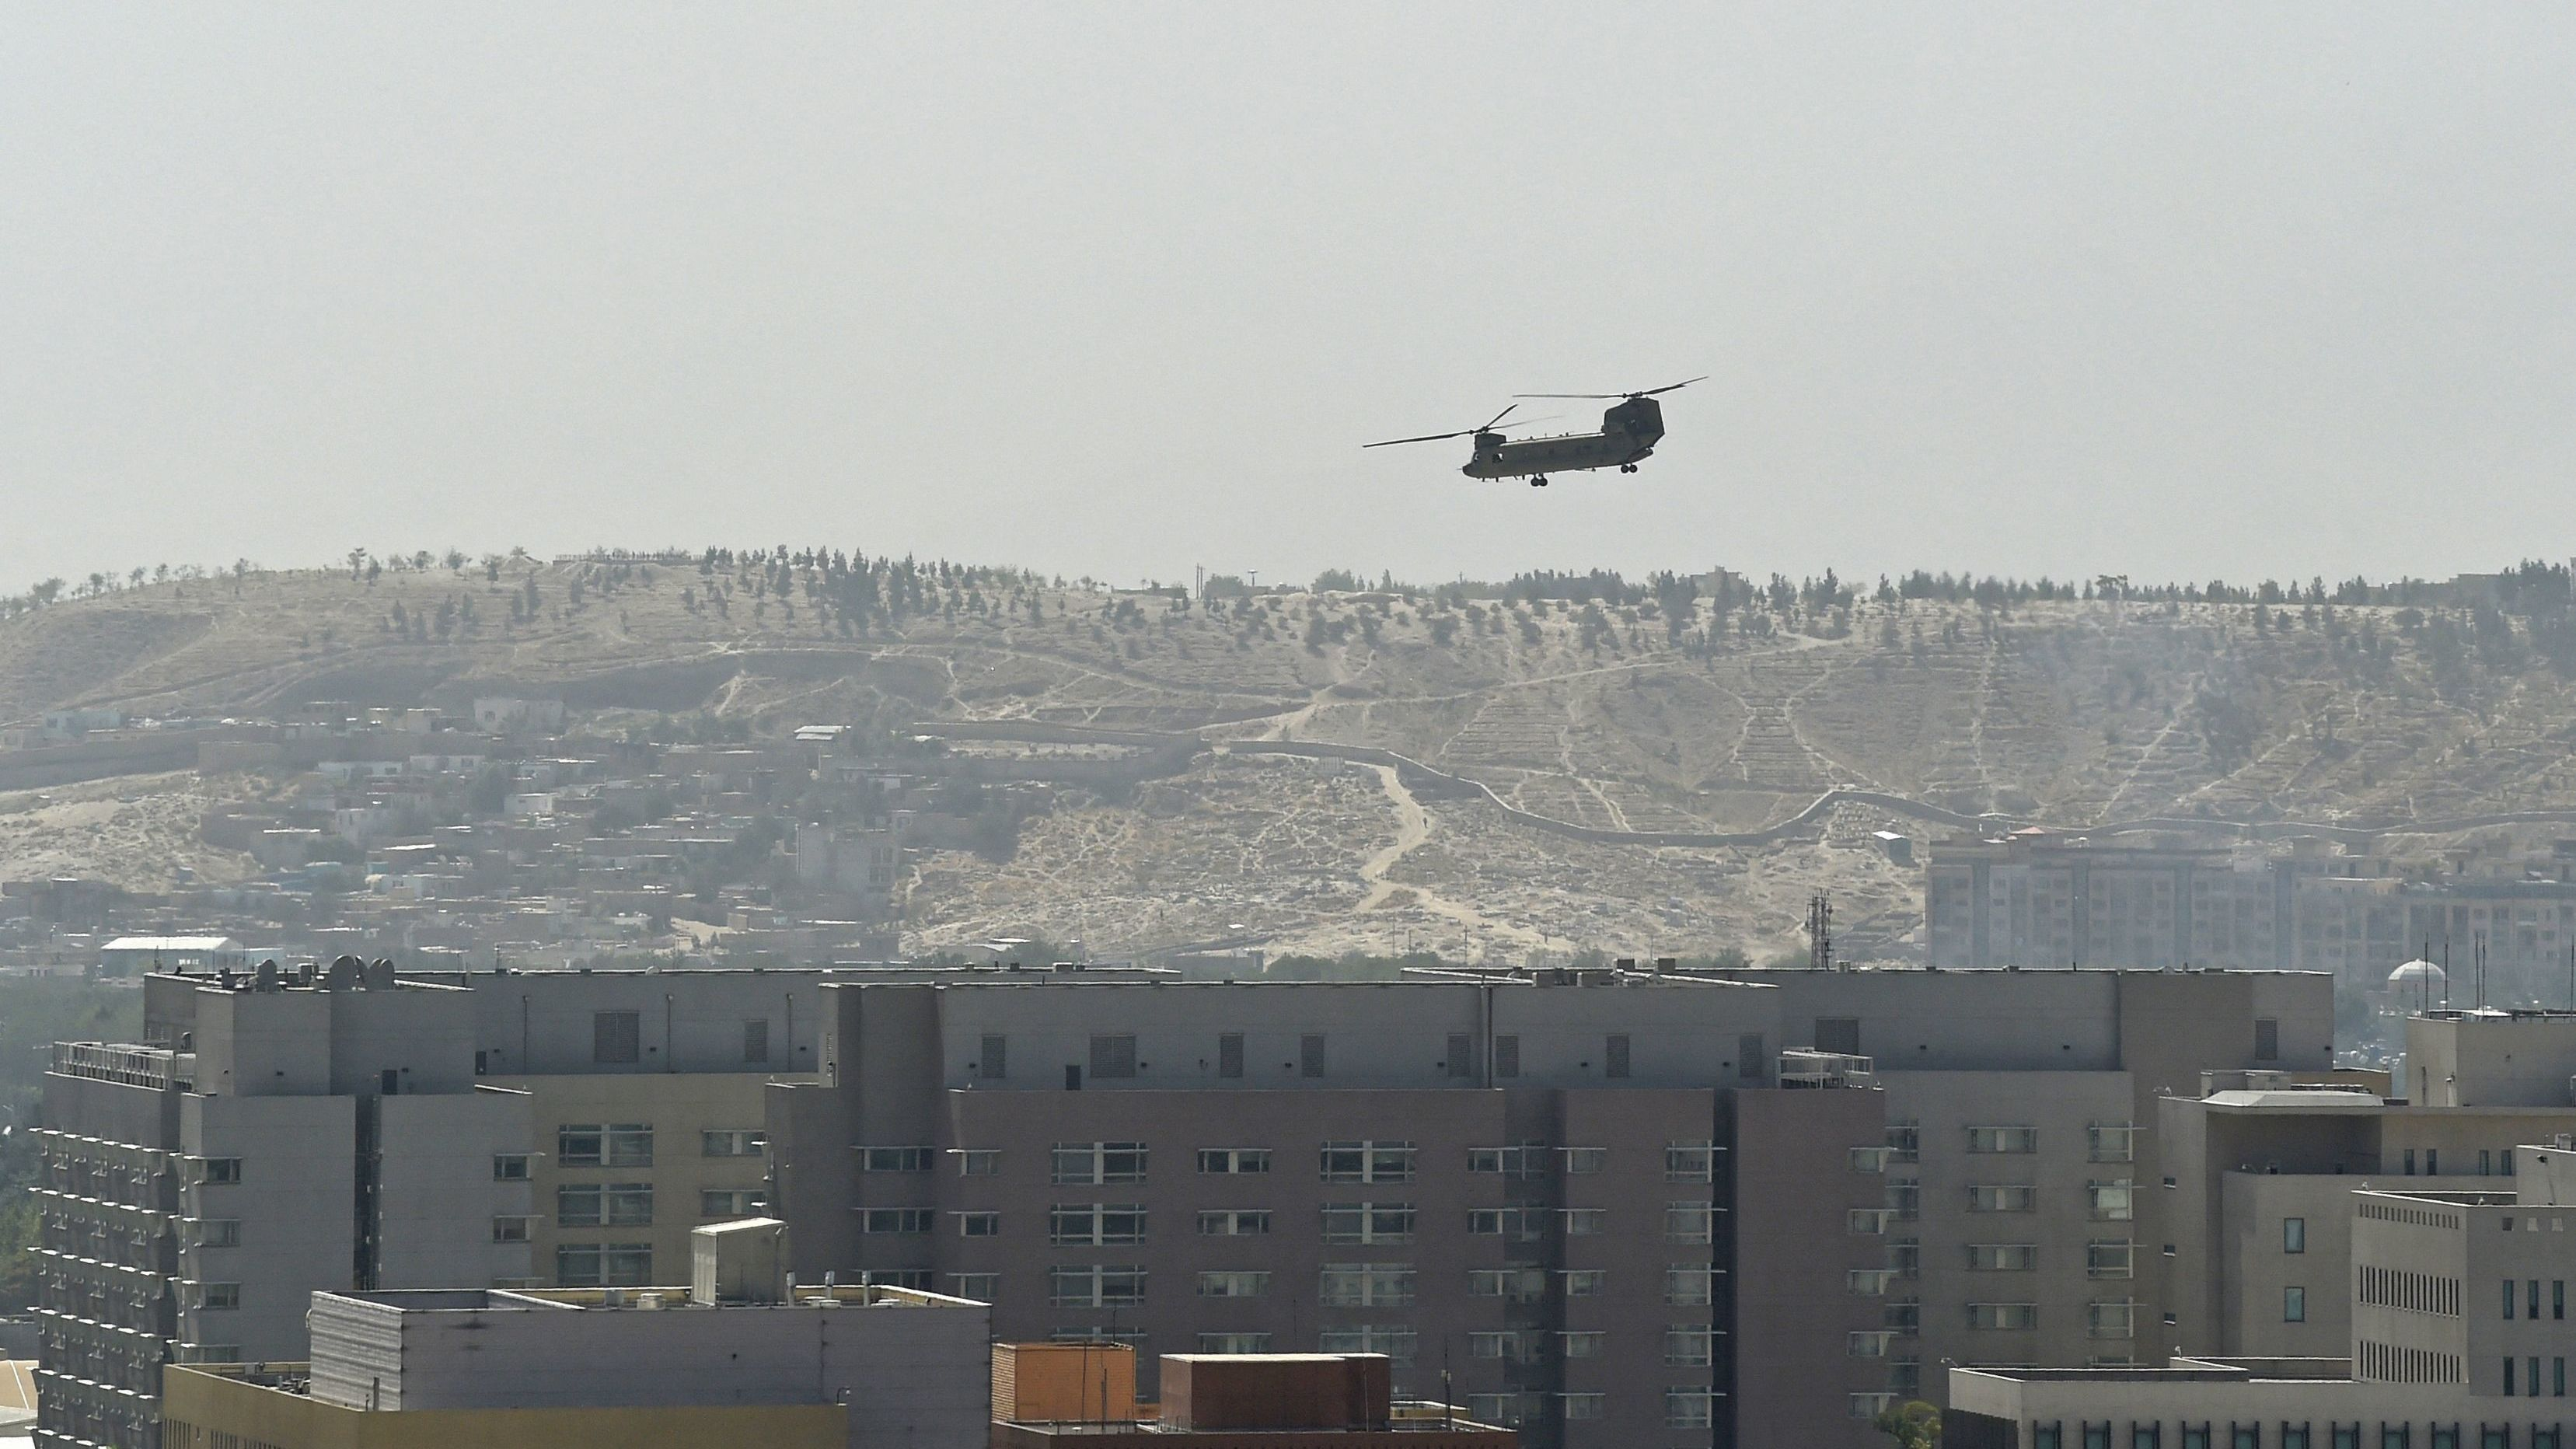 A U.S. military helicopter is pictured flying above the U.S. Embassy in Kabul on Sunday. The Taliban swept into Kabul, facing little resistance.